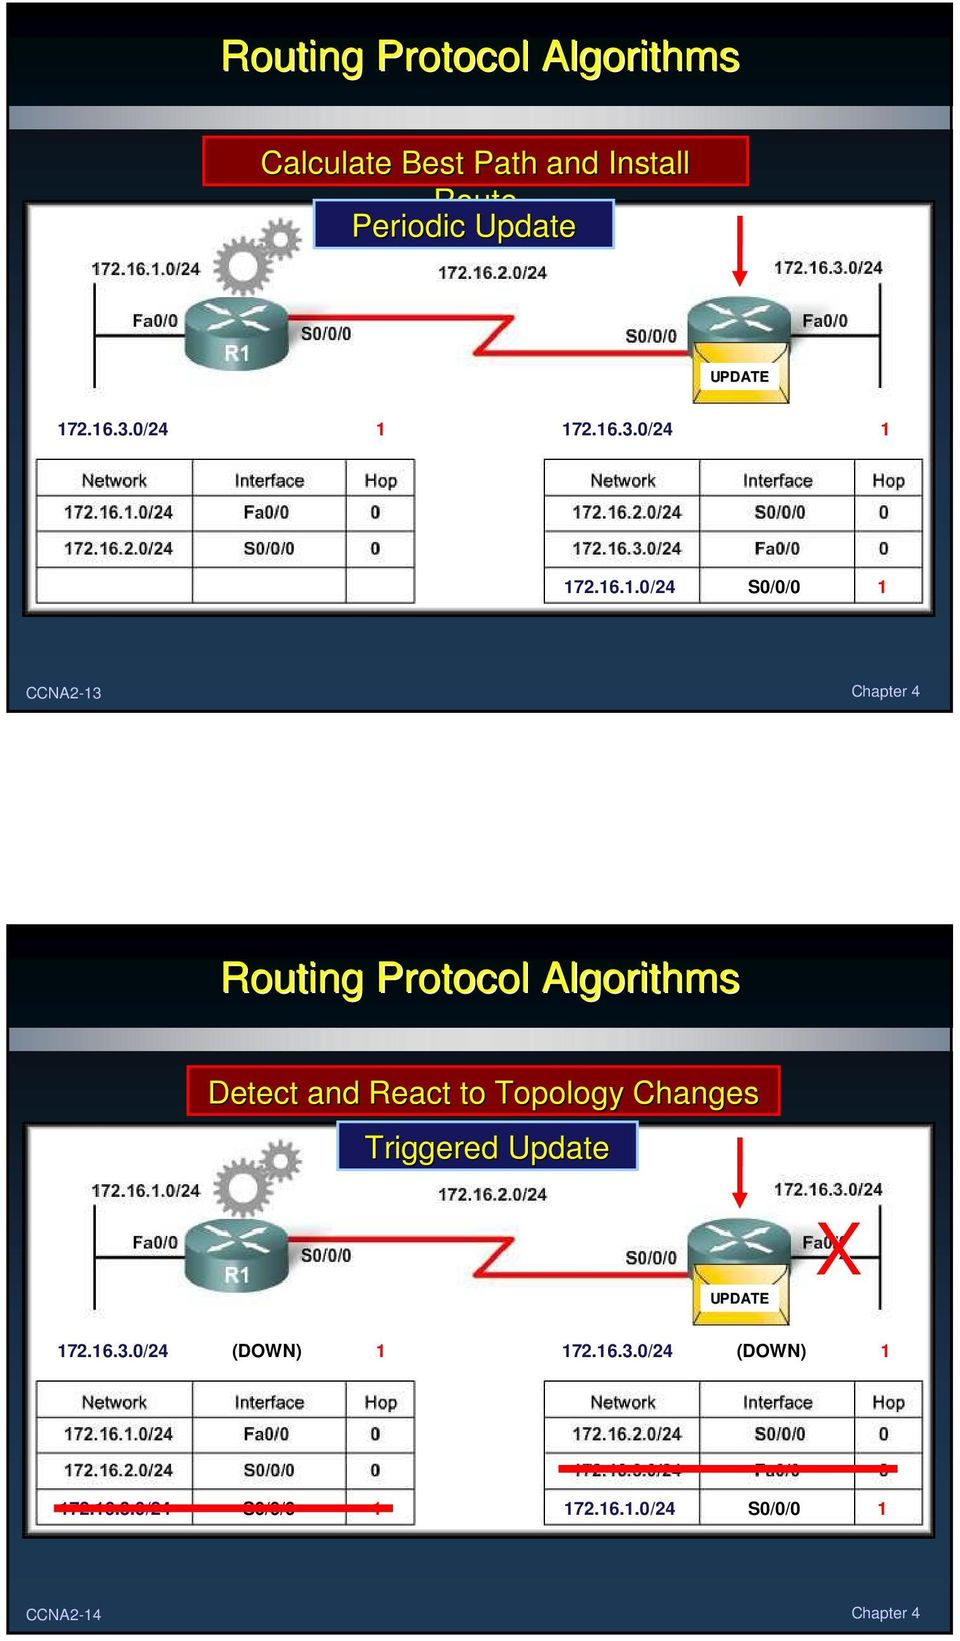 2.16.3./24 S// 1 172.16.3./24 1 172.16.1./24 S// 1 CCNA2-13 Chapter 4 Routing Protocol